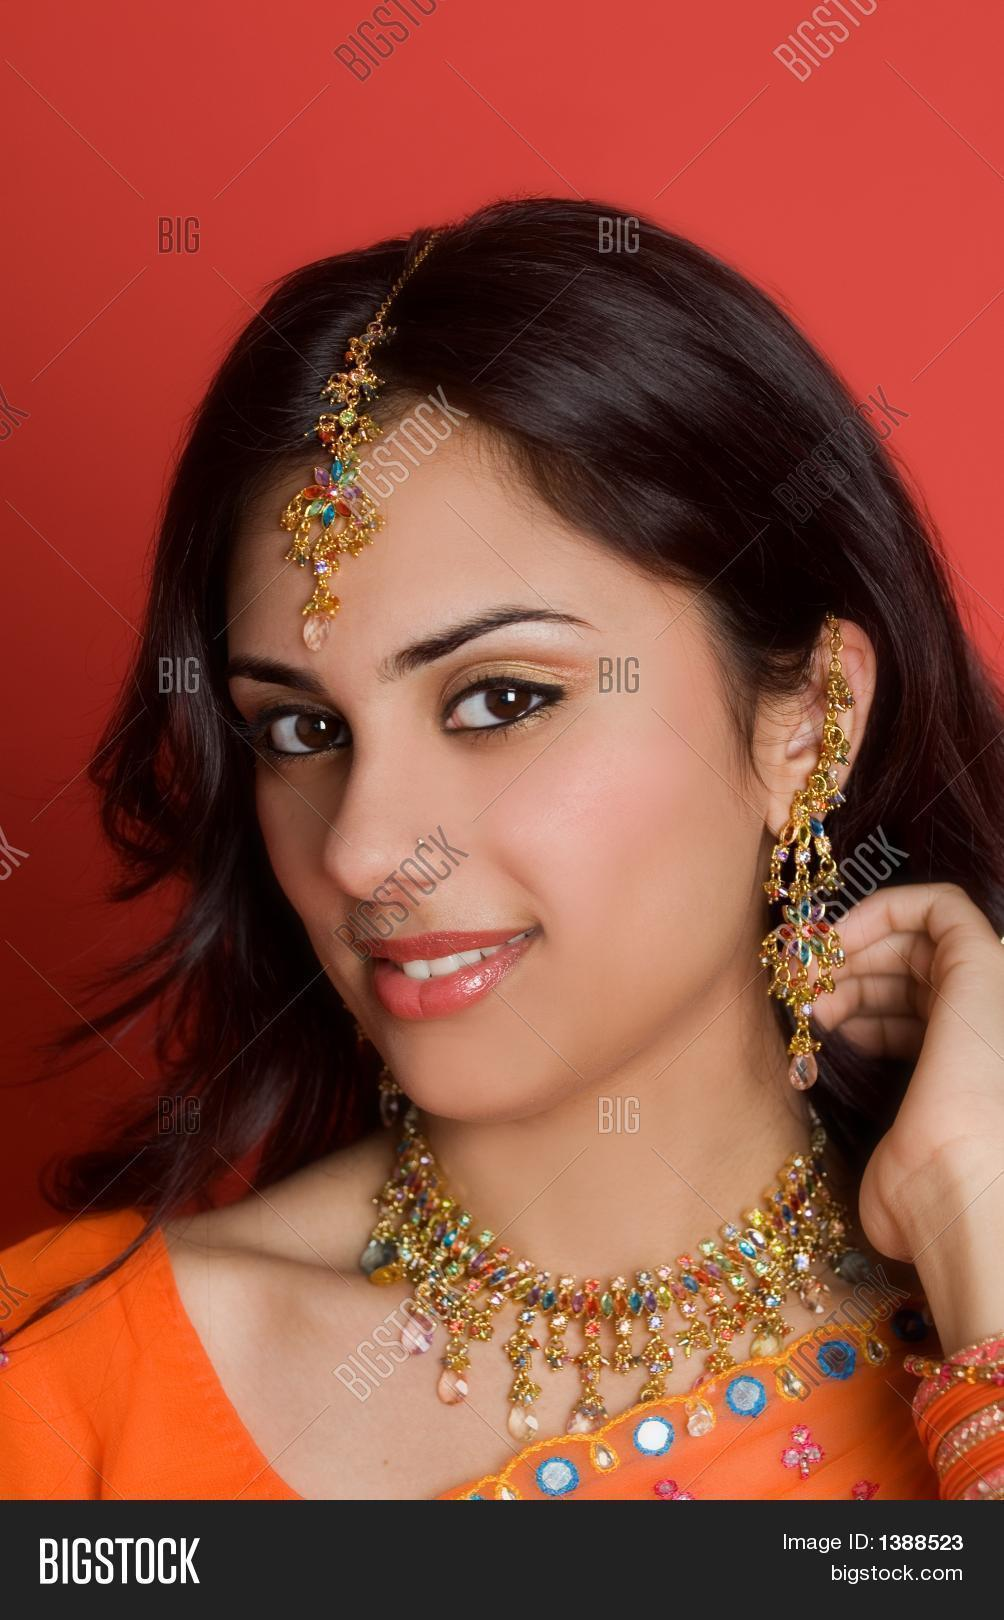 nesmith hindu single women Indian dating personals - register online and you will discover single men and women who are also looking for relationship an online dating is free to join for dating and flirting with local singles.